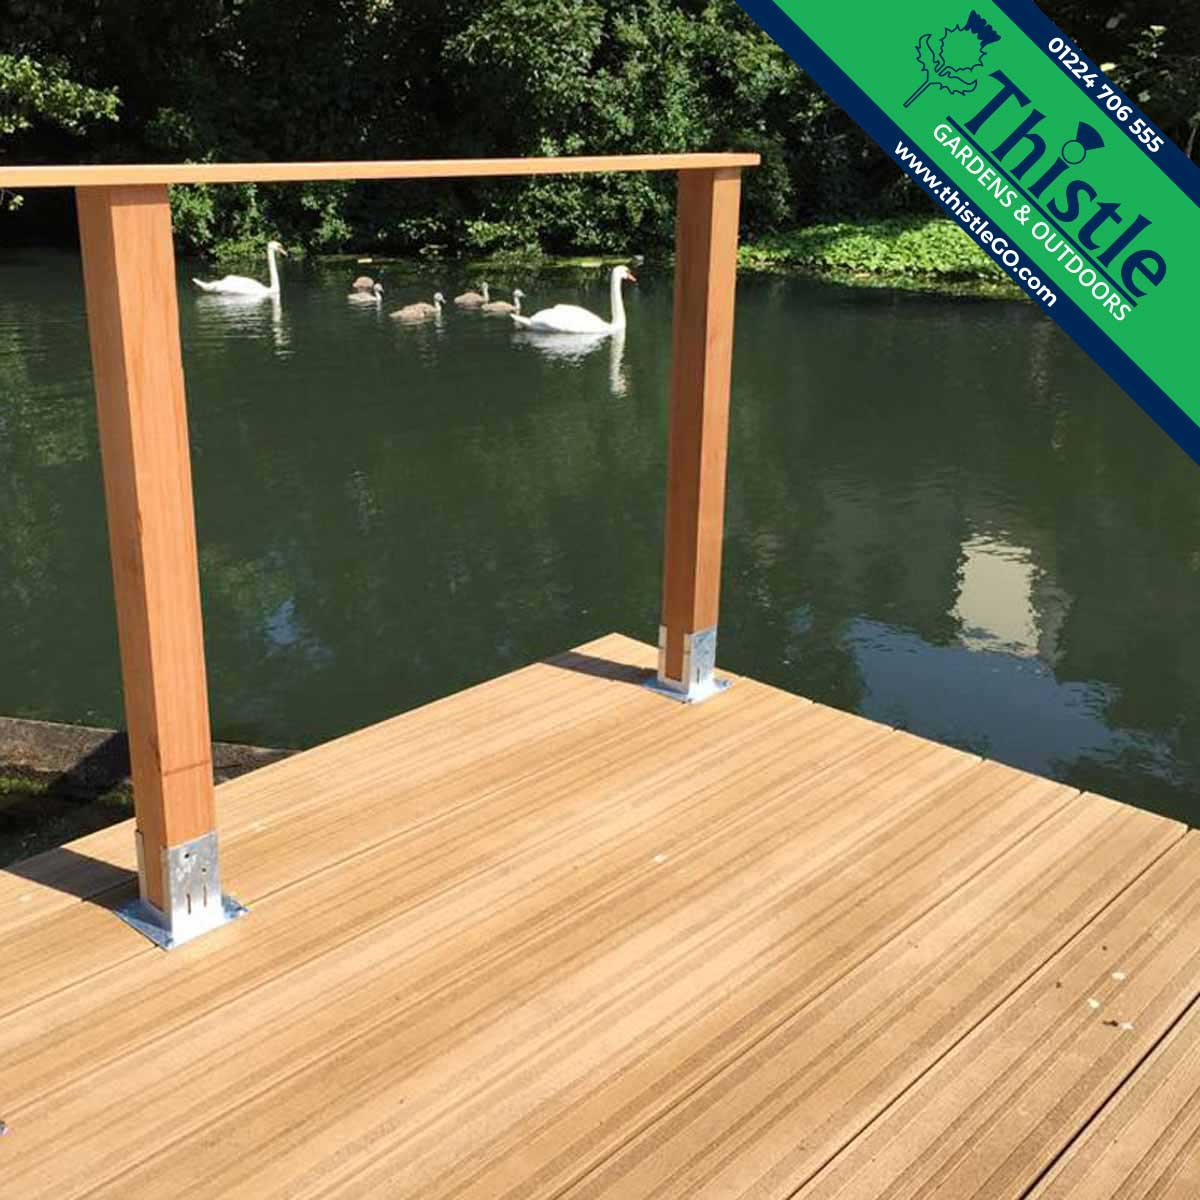 Enhanced Grip Composite Decking in Golden Oak